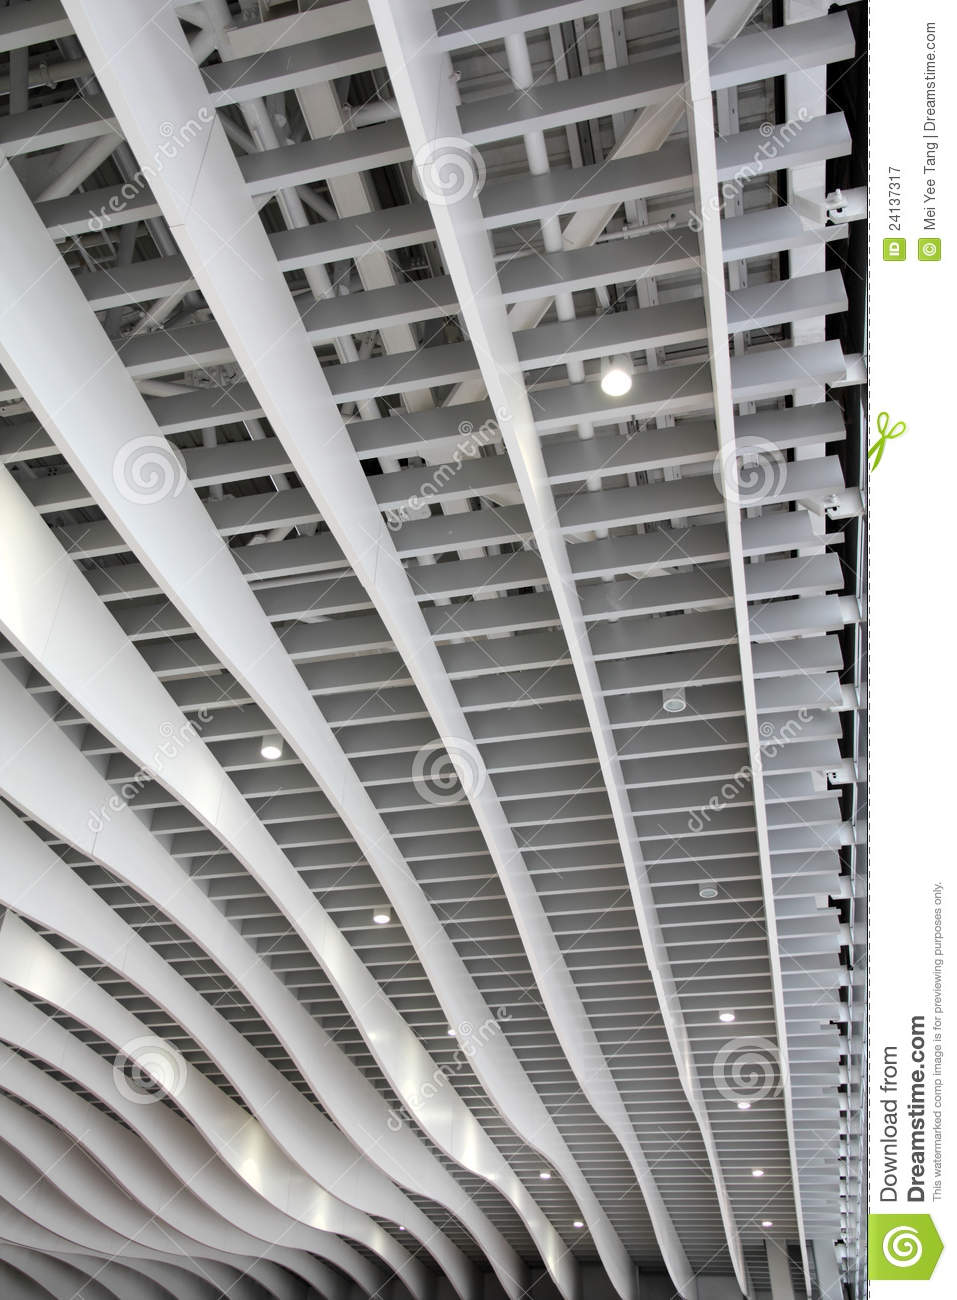 Modern Ceiling Canopy Royalty Free Stock Photography - Image: 24137317